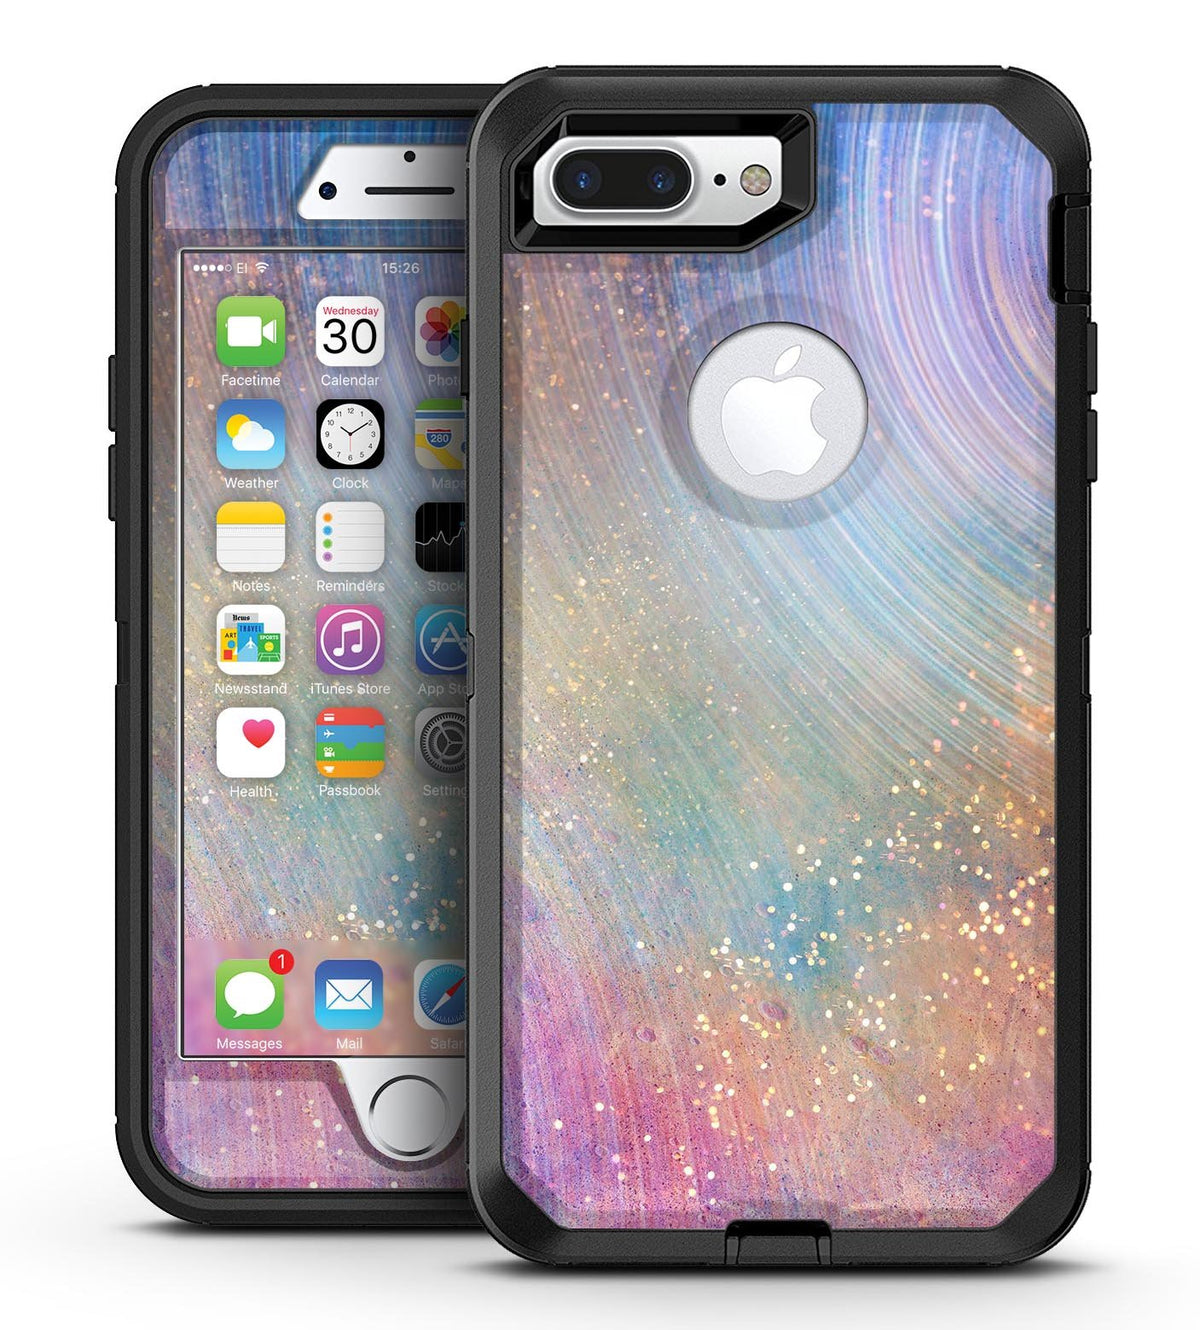 low priced 89bf8 5806f The Swirling Tie-Dye Scratched Surface - iPhone 7 Plus/8 Plus OtterBox Case  & Skin Kits